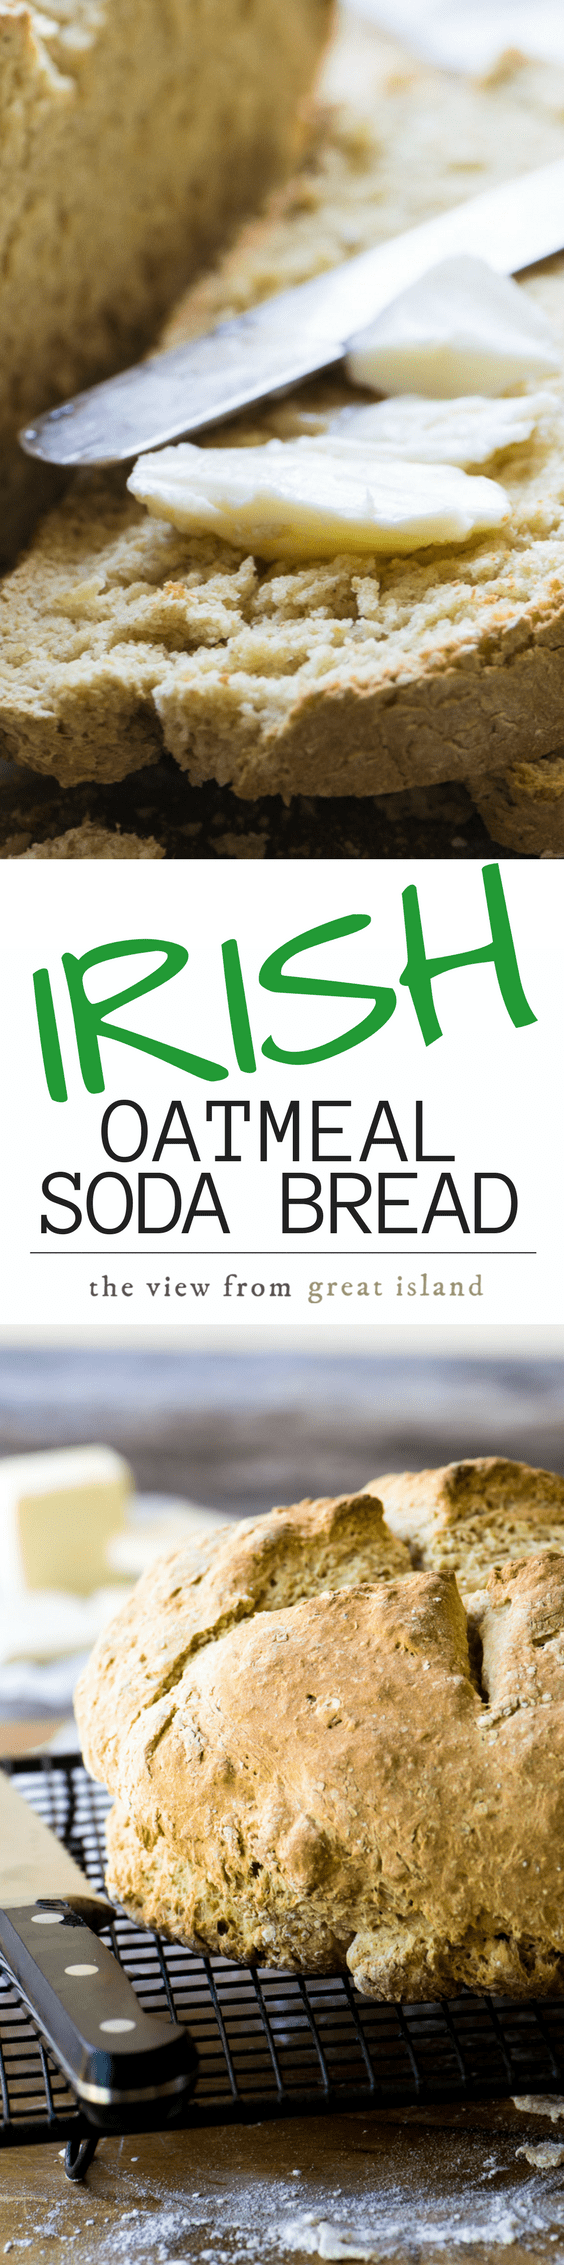 Irish Oatmeal Soda Bread ~ I've made this authentic Irish quick bread even more delicious with the addition of oat flour. #bread #quickbread #irishbread #noyeastbread #sodabread #oatmealbread #easybread #baking #irishrecipe #stpatricksday #oatmeal #rusticbread